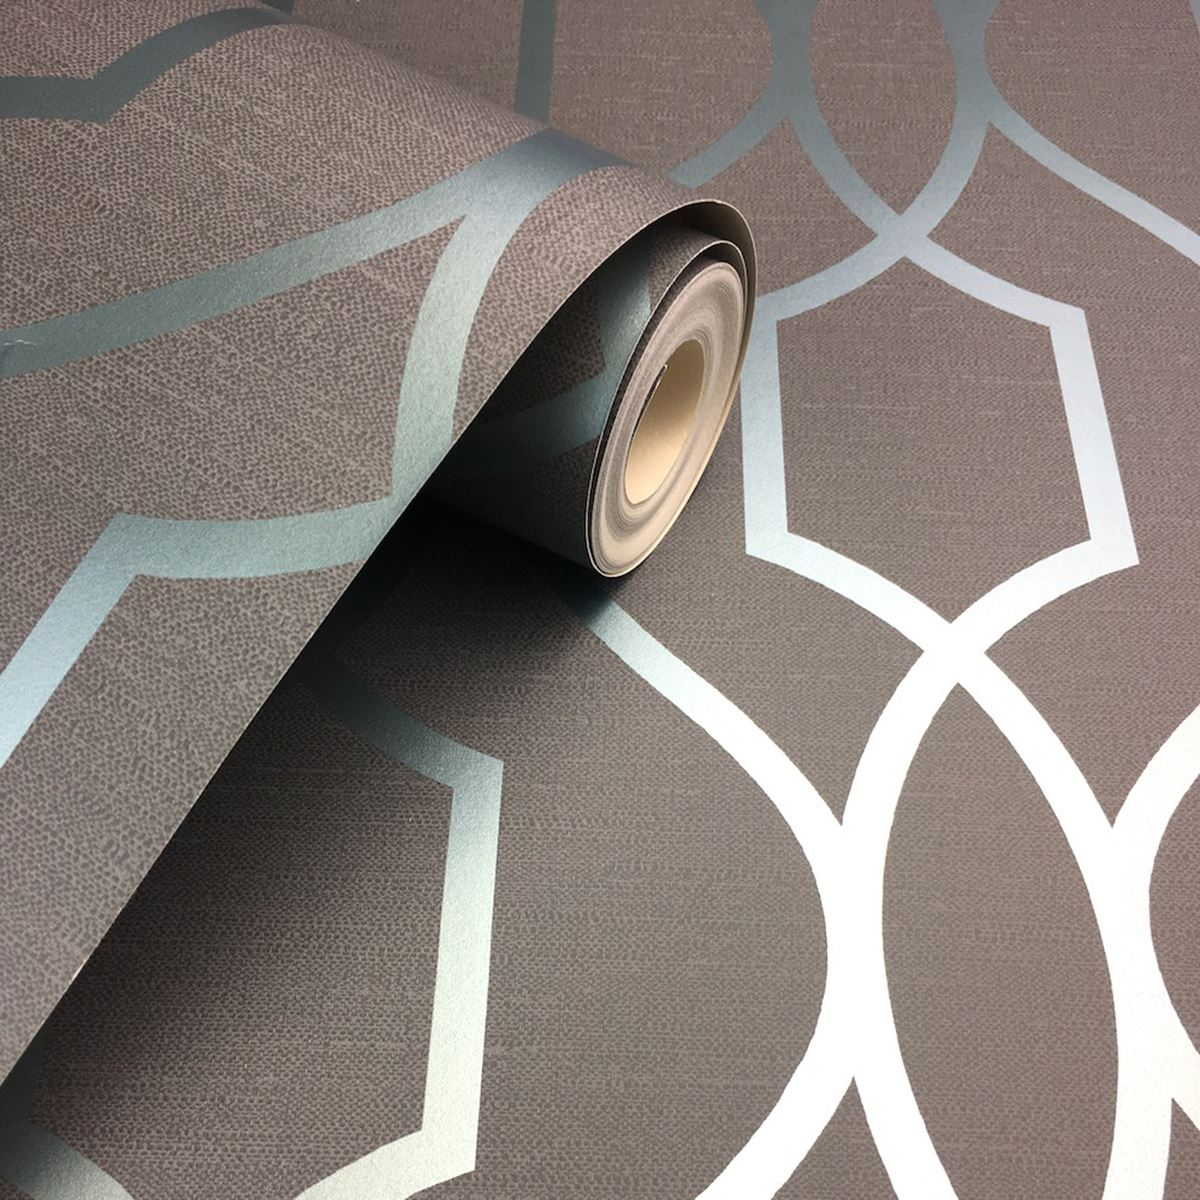 Apex Trellis Sidewall Wallpaper Copper: FINE DECOR APEX GEOMETRIC TRELLIS WALLPAPER STONE GREY